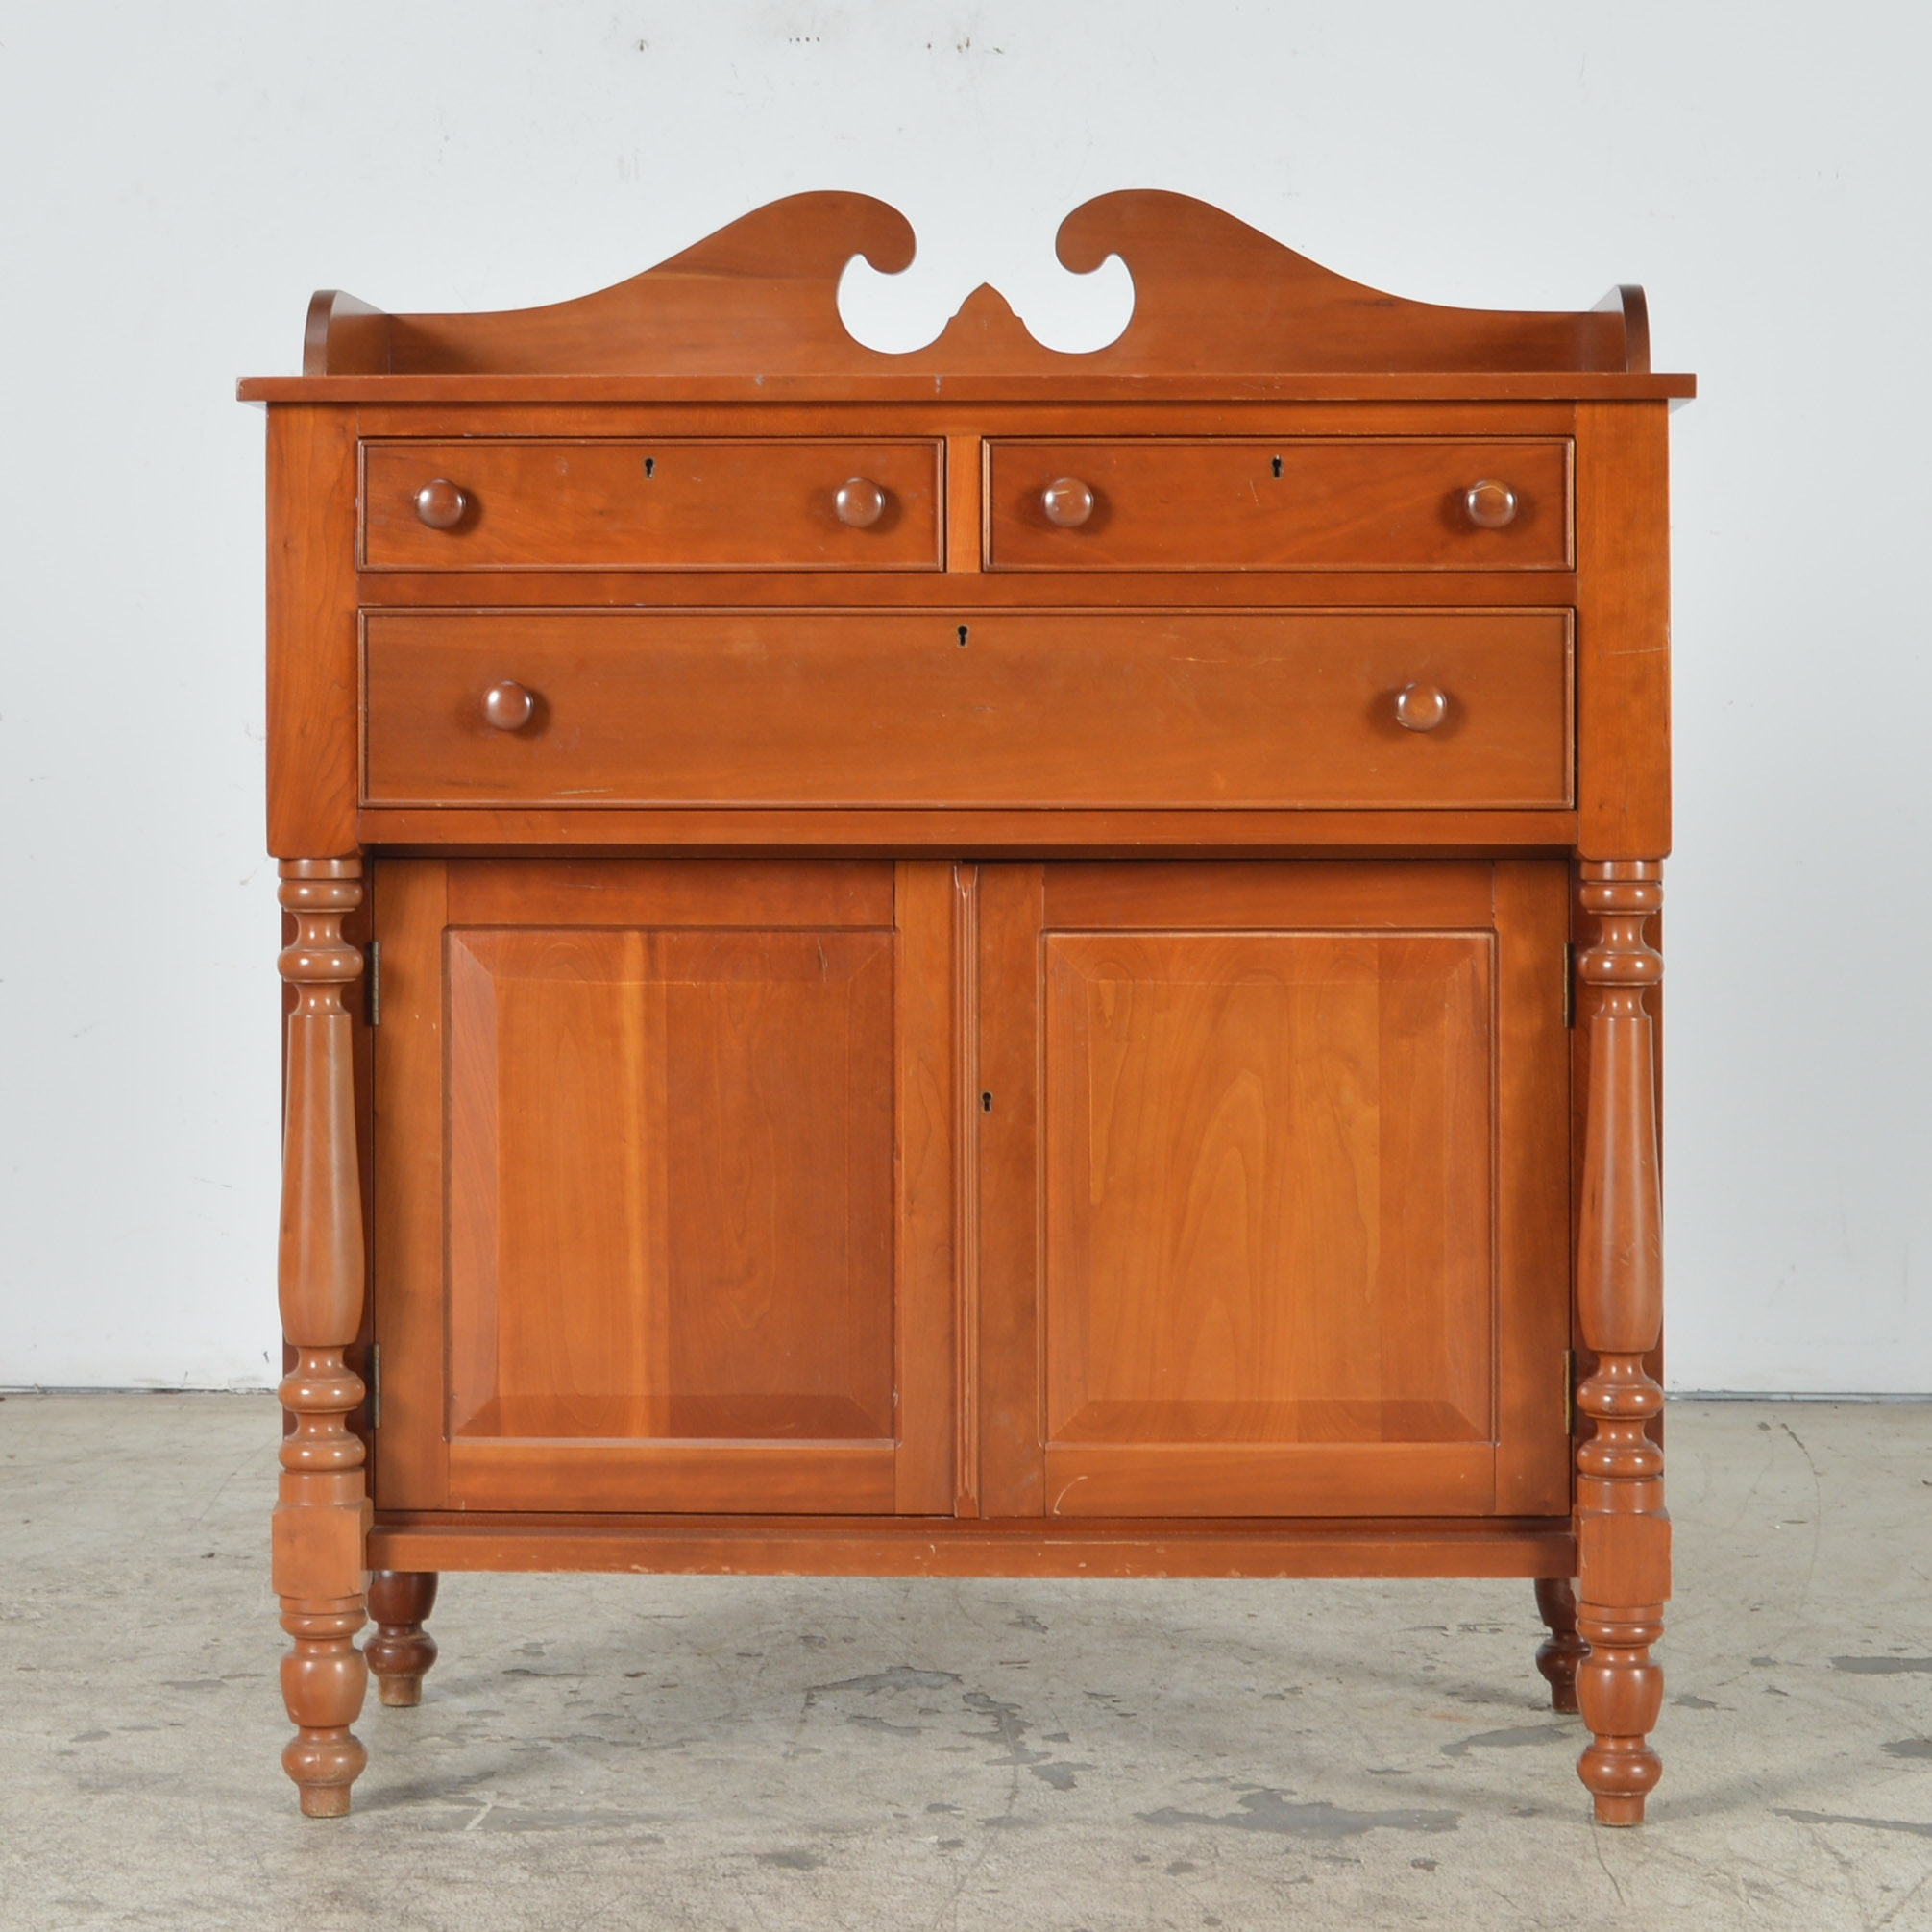 Cherry Reproduction American Empire Style Sideboard By Cassady Furniture  Co. Of Bowling Green, KY ...